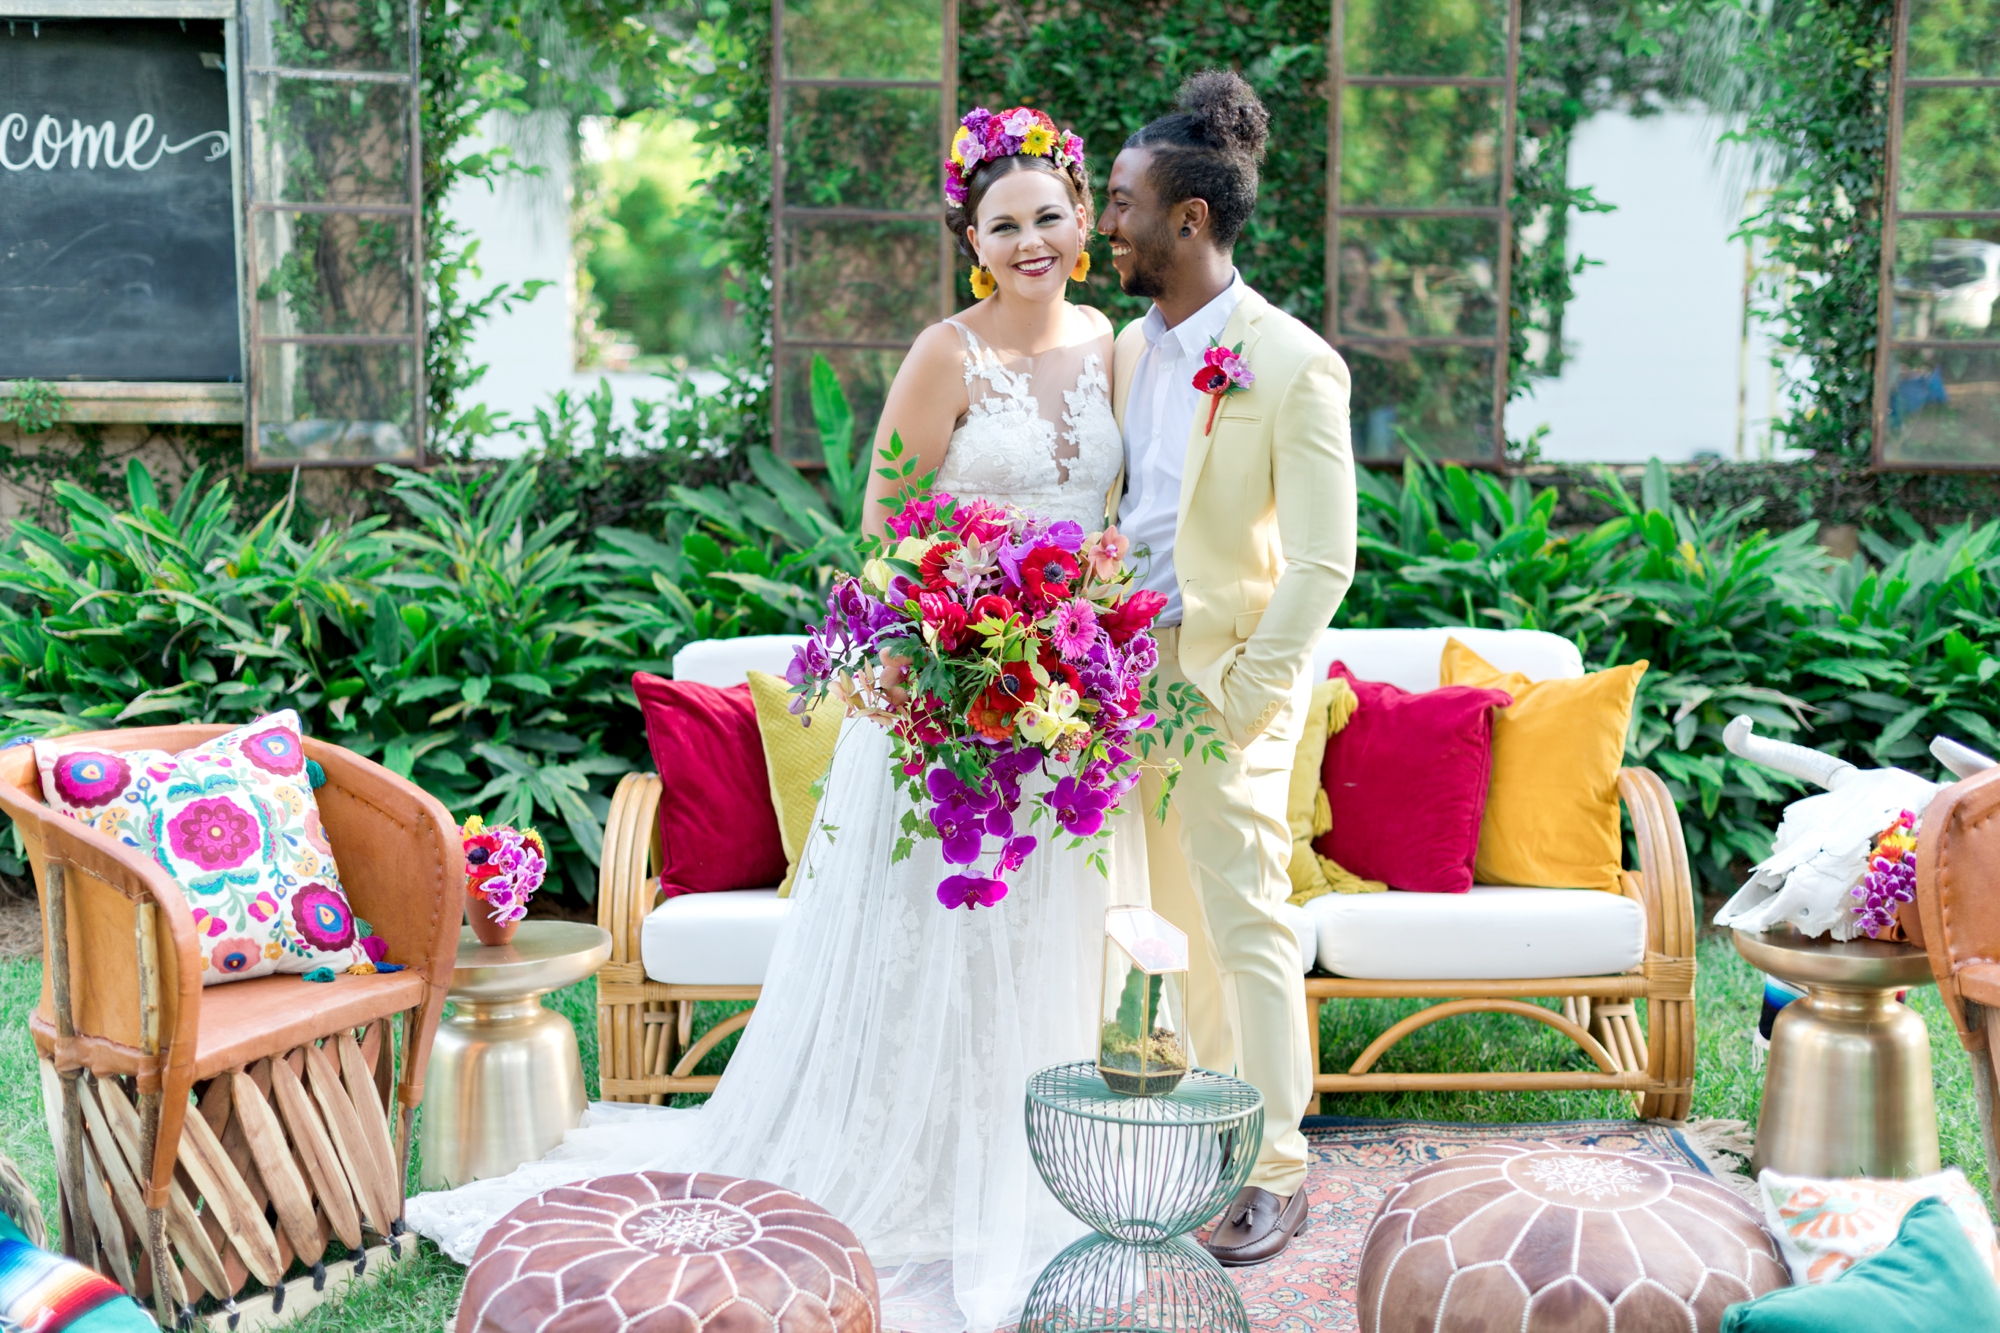 frida khalo inspired wedding